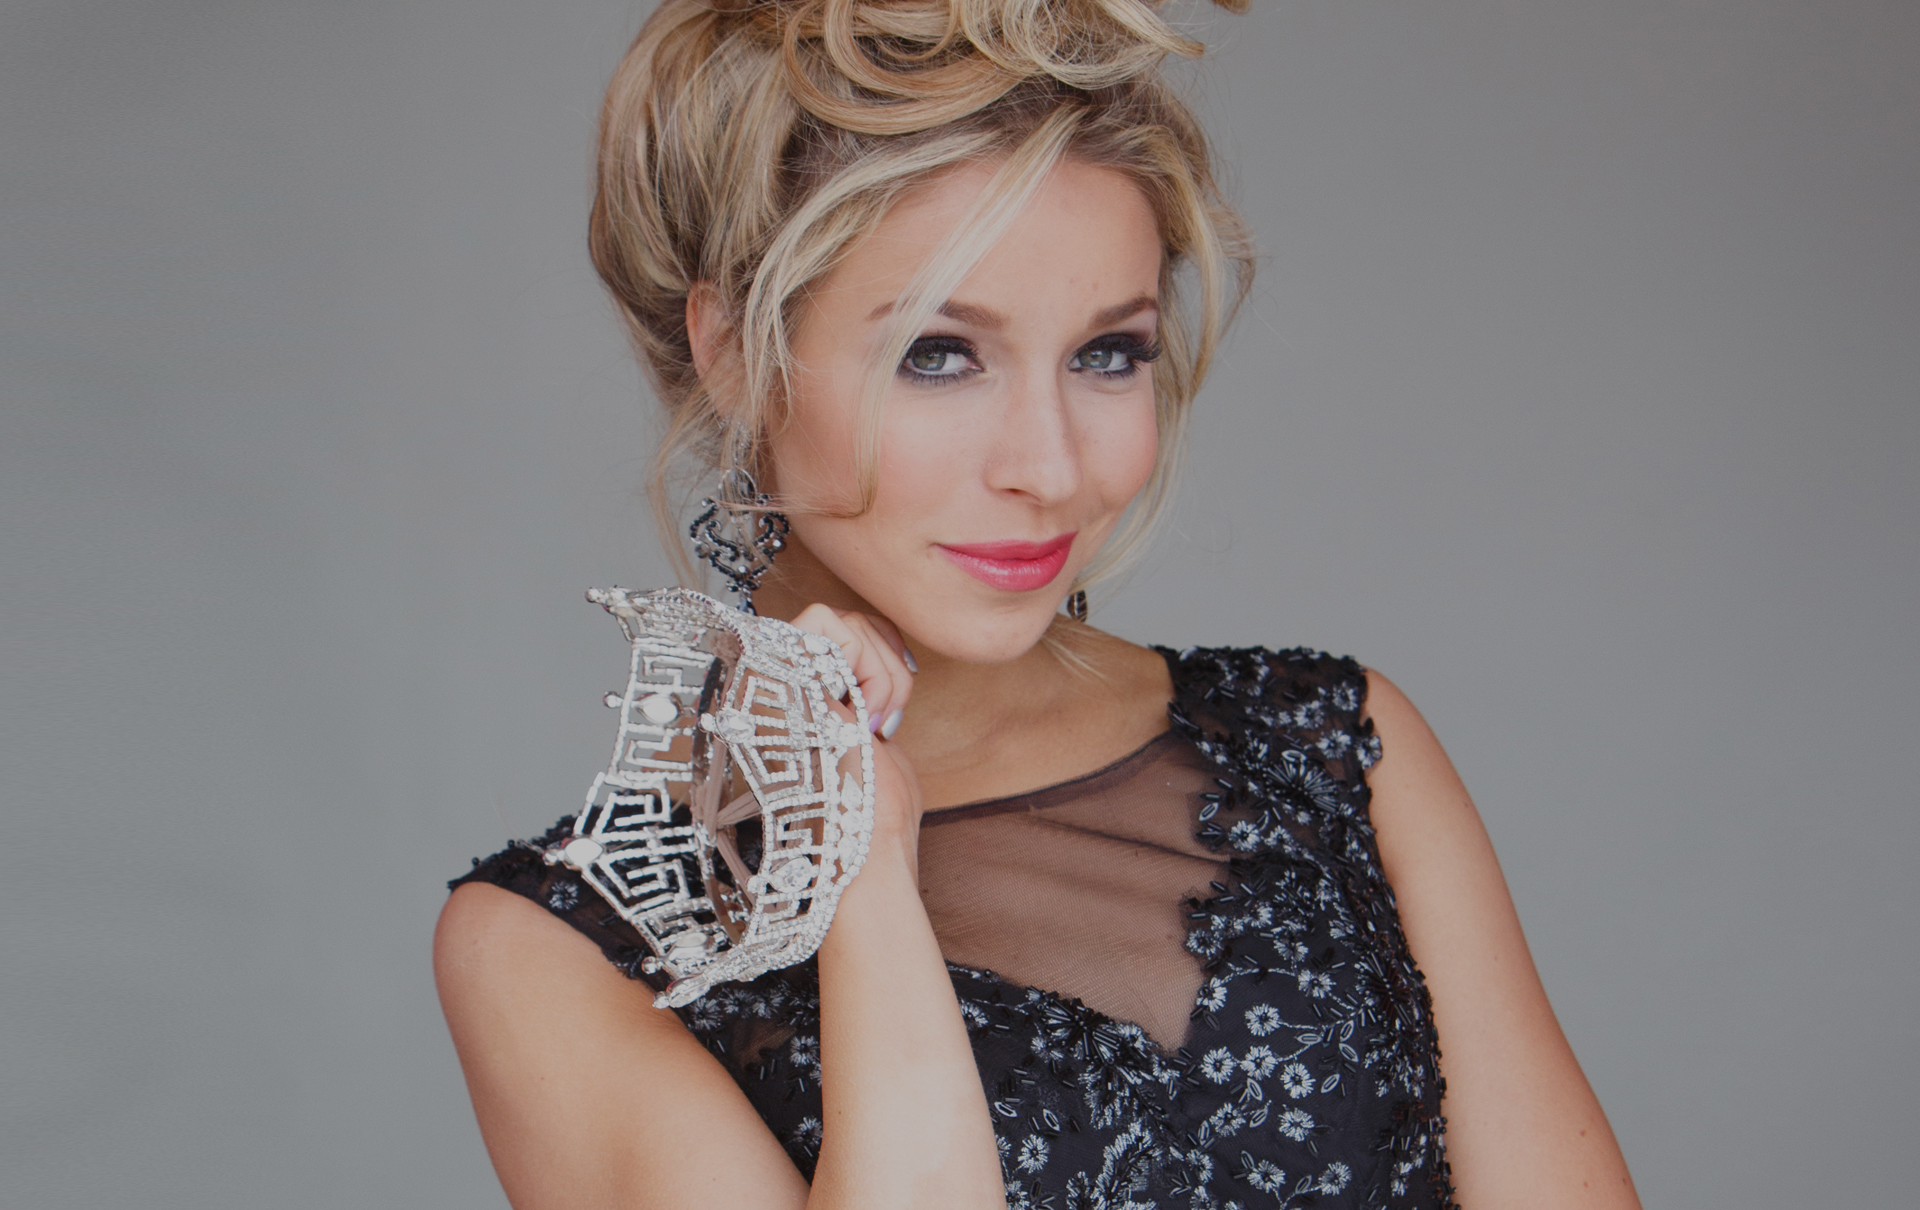 kira kanzantsev, miss america 2015. T37pi8is